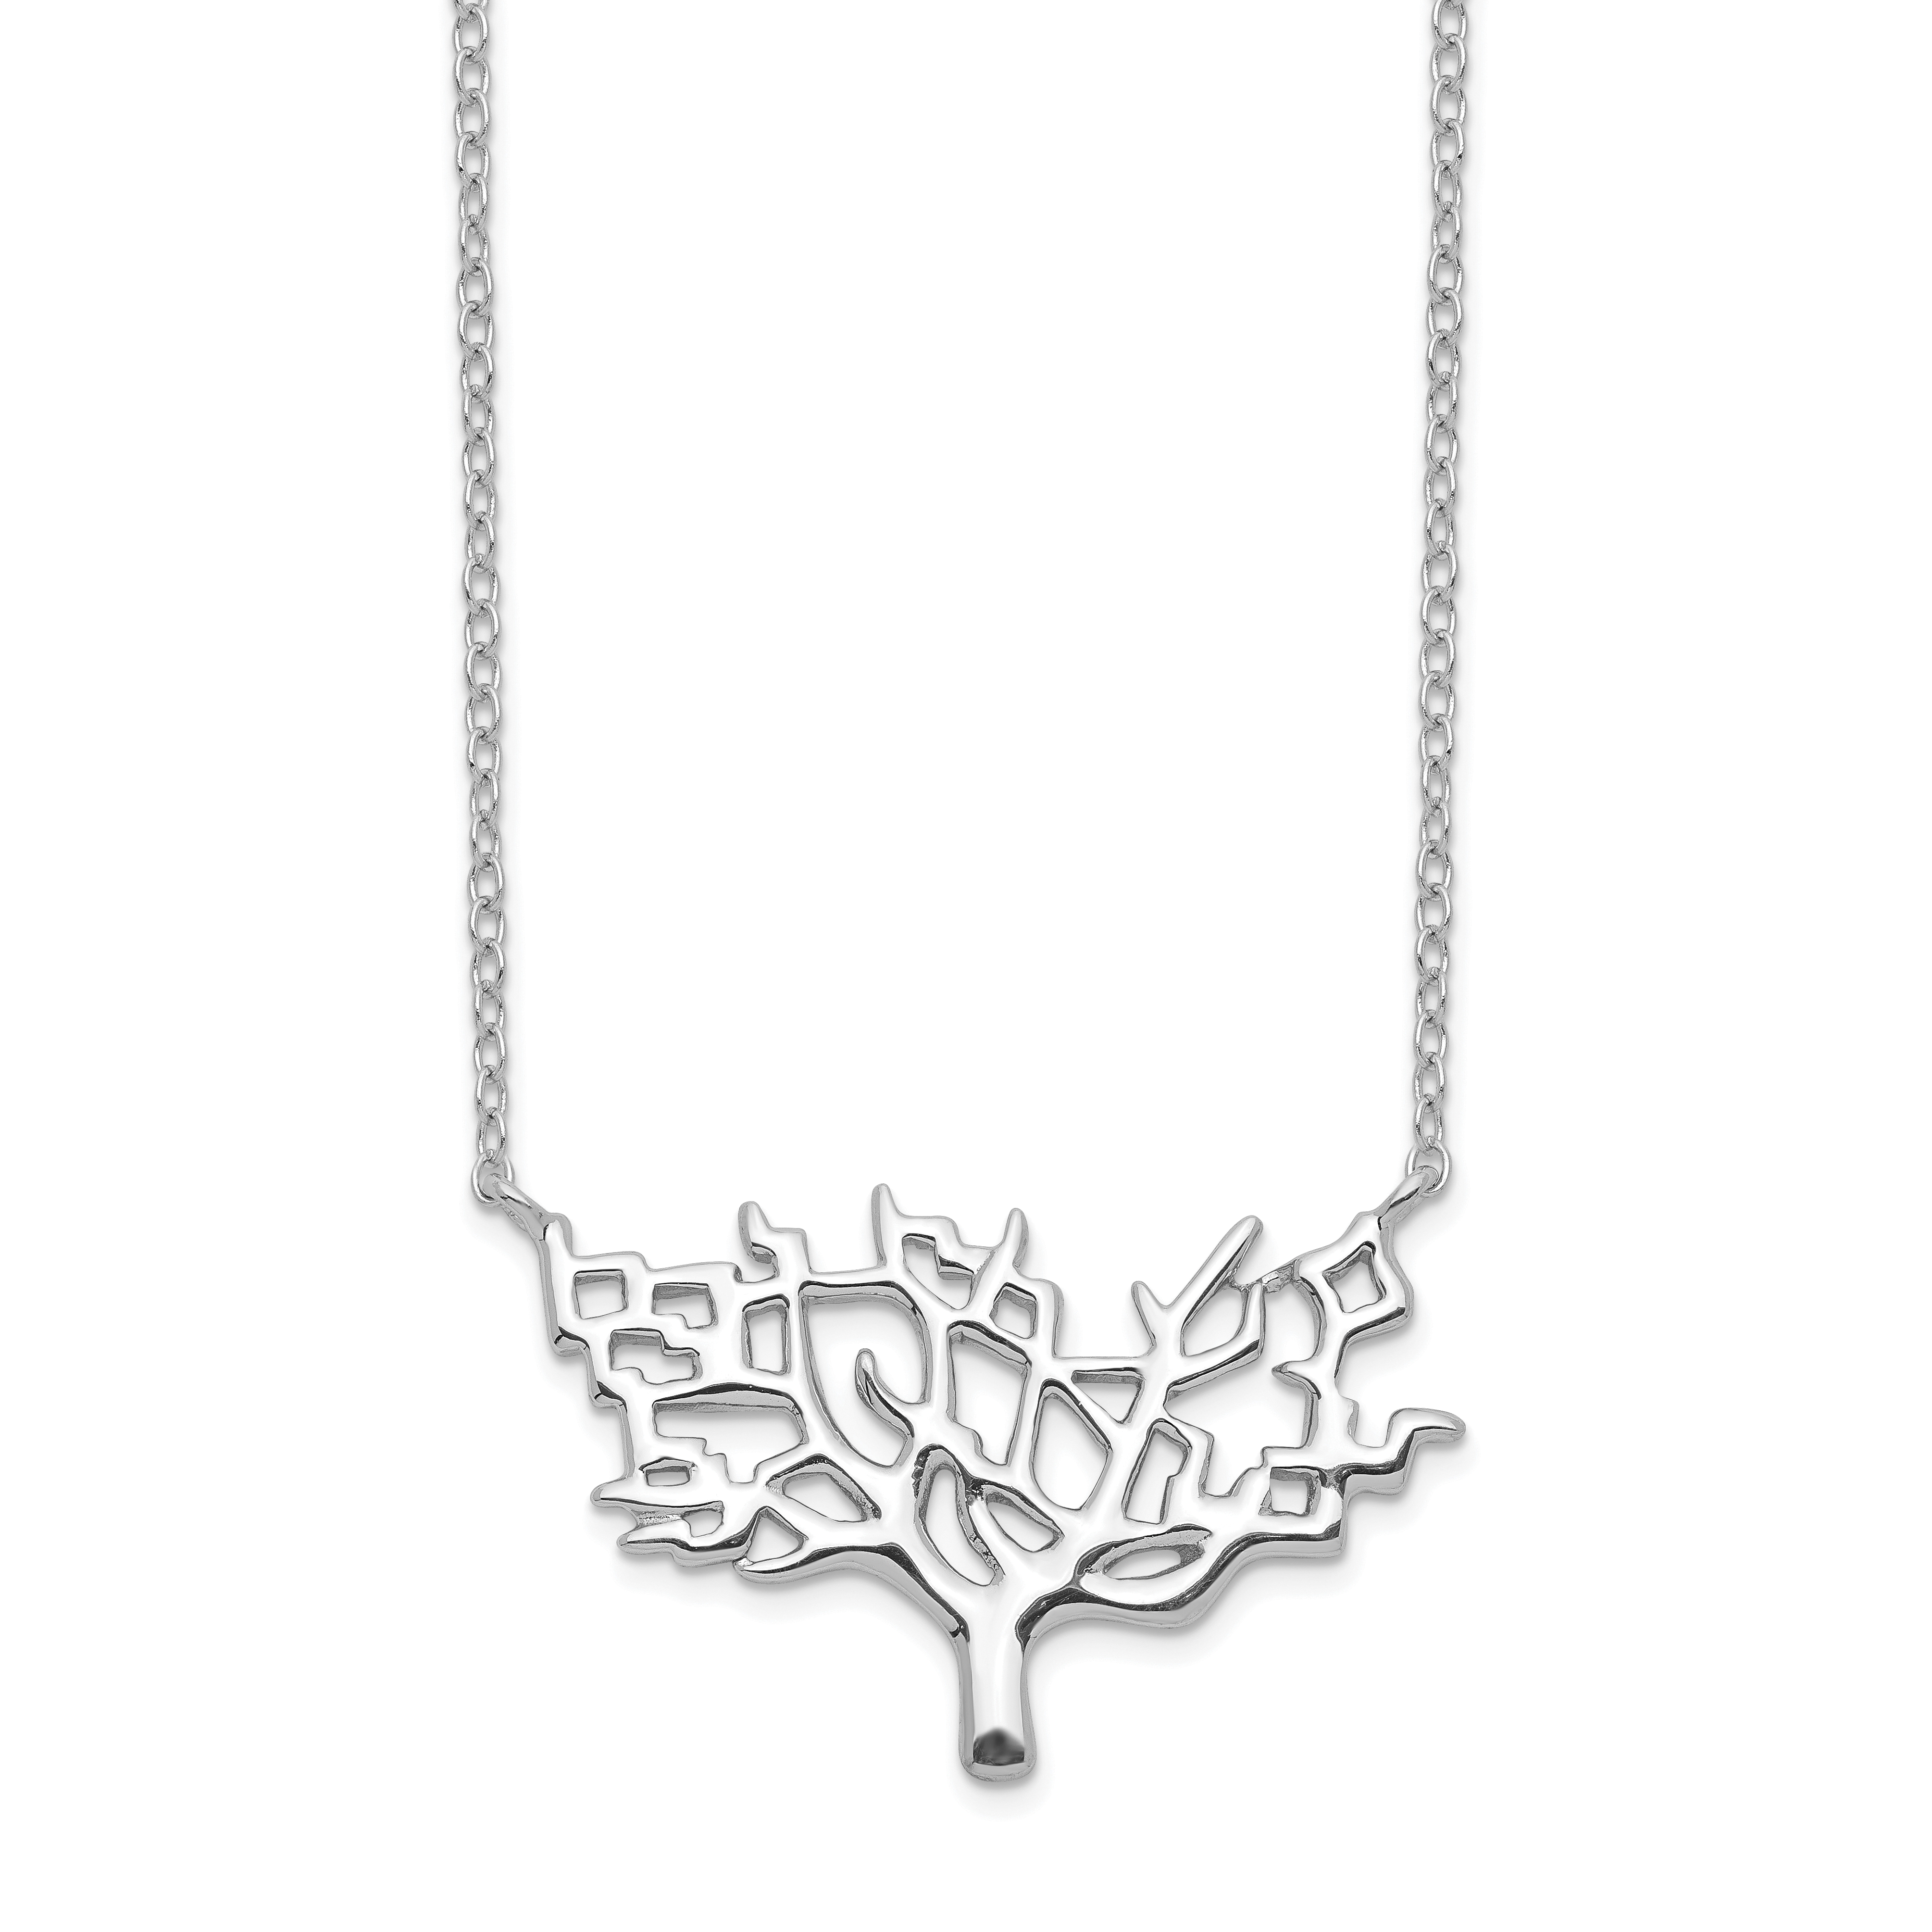 925 Sterling Silver Tree 2 Inch Extension Chain Necklace Pendant Charm Leaf Fine Jewelry Gifts For Women For Her - image 2 de 2